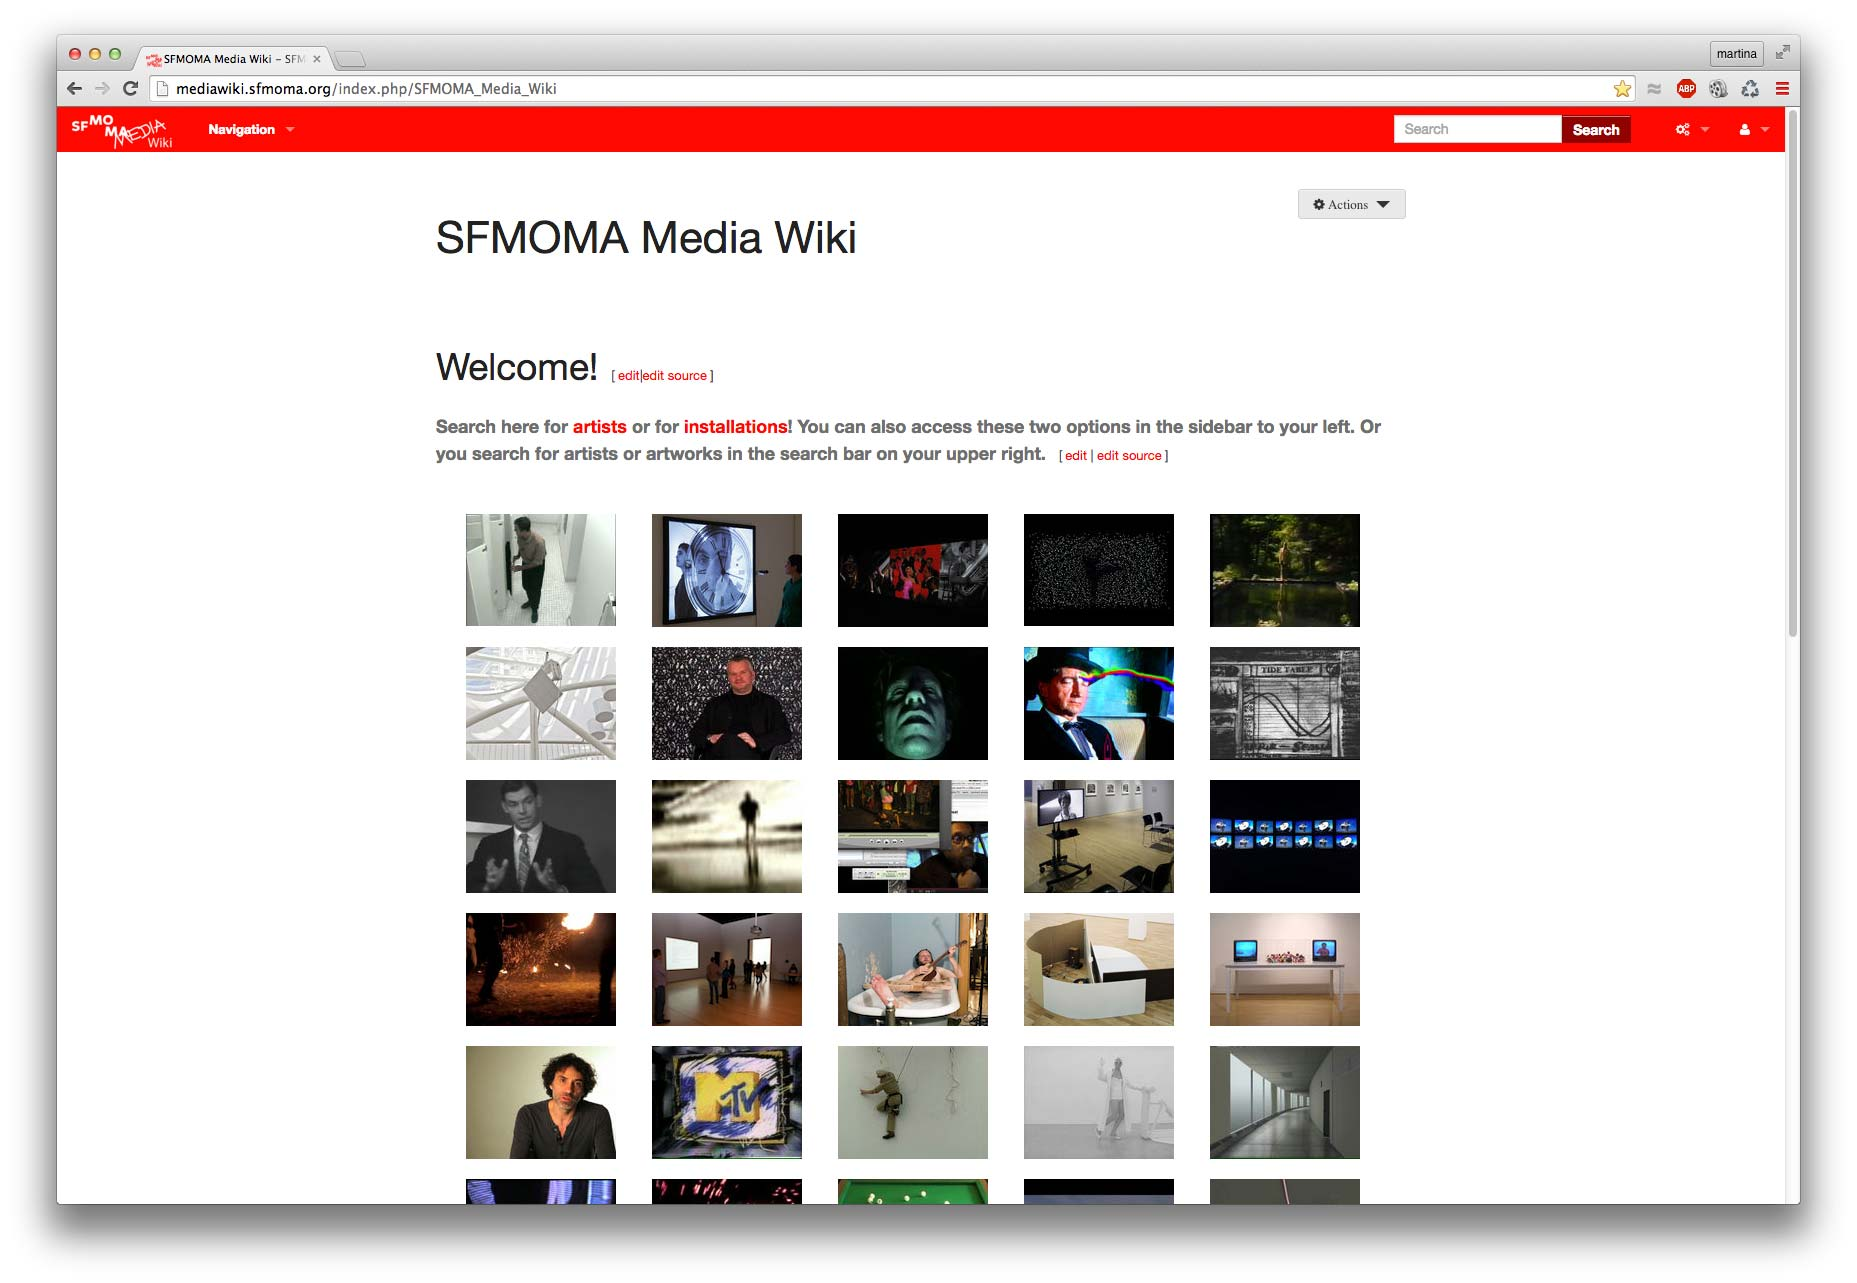 Figure 4. Homepage of SFMOMA's MediaWiki after its design overhaul in 2016.